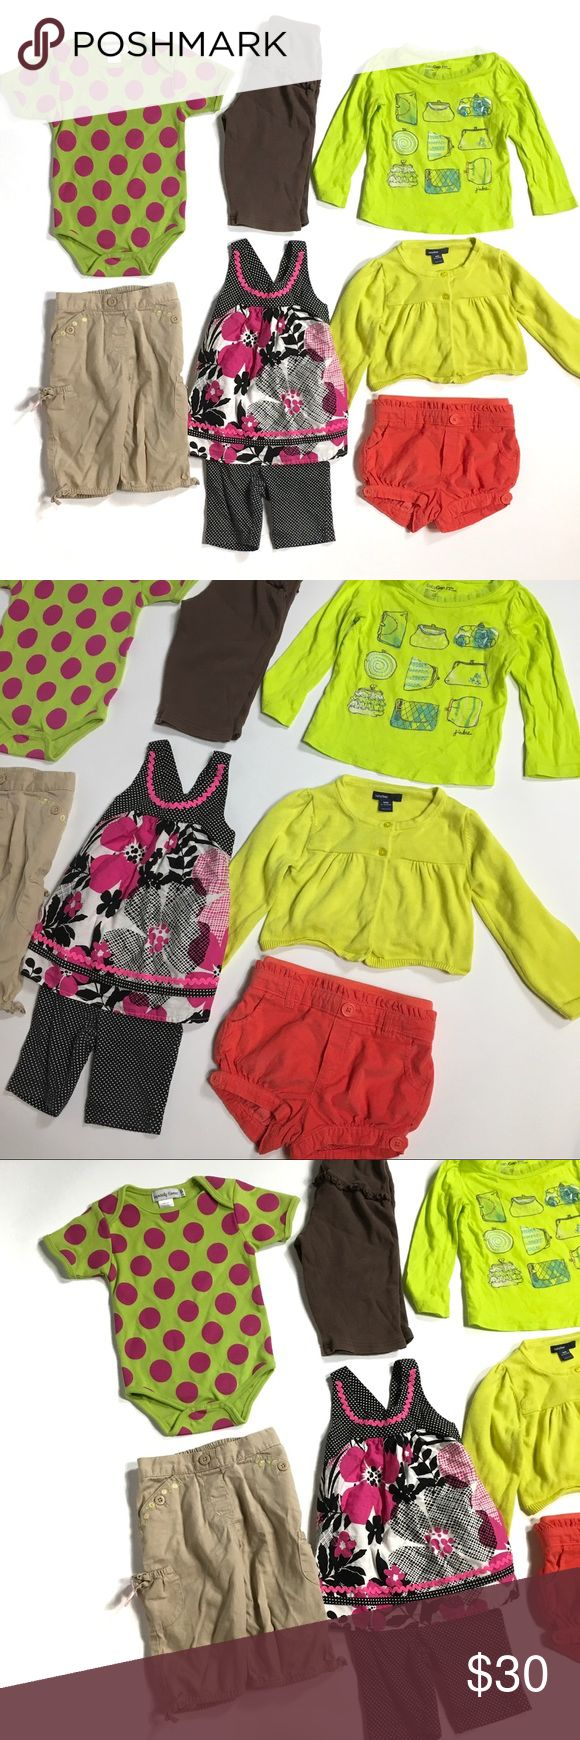 Baby Girl's BUNDLE 12-124M Gymboree, Baby Gap You're receiving 8 items:   1. NWT Baby Gap coral shorts (18/24M) 2. Baby Gap Lime Green Cardigan Sweater (12/18m) 3. Baby Gap Purses Tee Shirt (12/18m) 4. Carter's brown pull on pants (12m) 5. Jenny & Me Matching Set (12m) 6. Gymboree Khaki Capri pants (12/18m) 7. Infinitely Sweet Polka Dot Onesie (12/18m) GAP Matching Sets